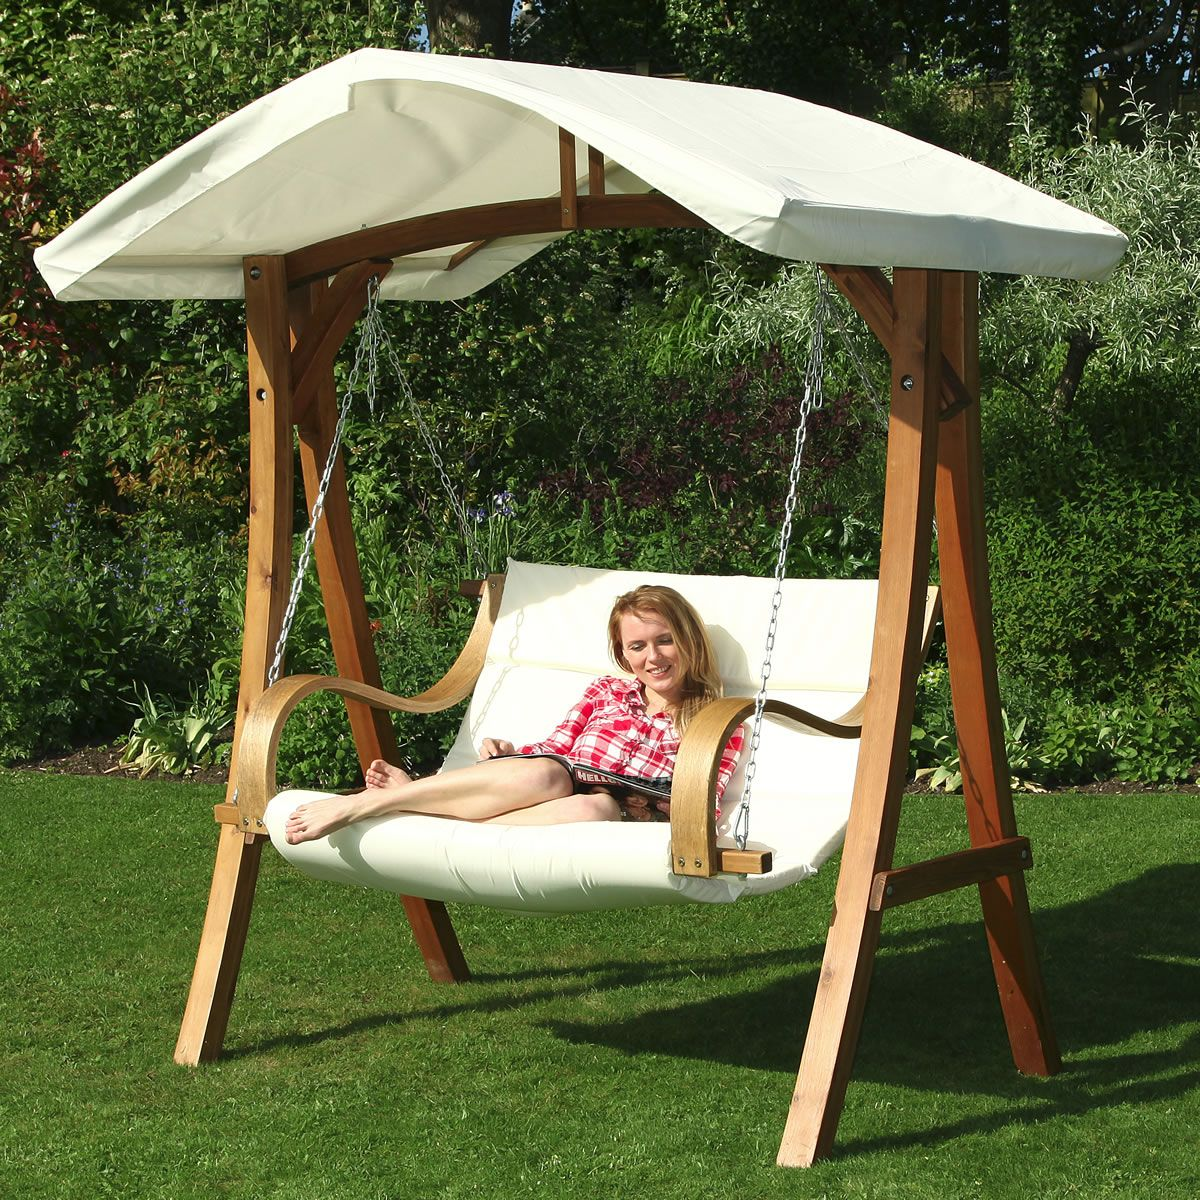 Win a luxurious solid wood swing chair with canopy - Offers - London Evening Standard  sc 1 st  Pinterest : canopy gardens - memphite.com